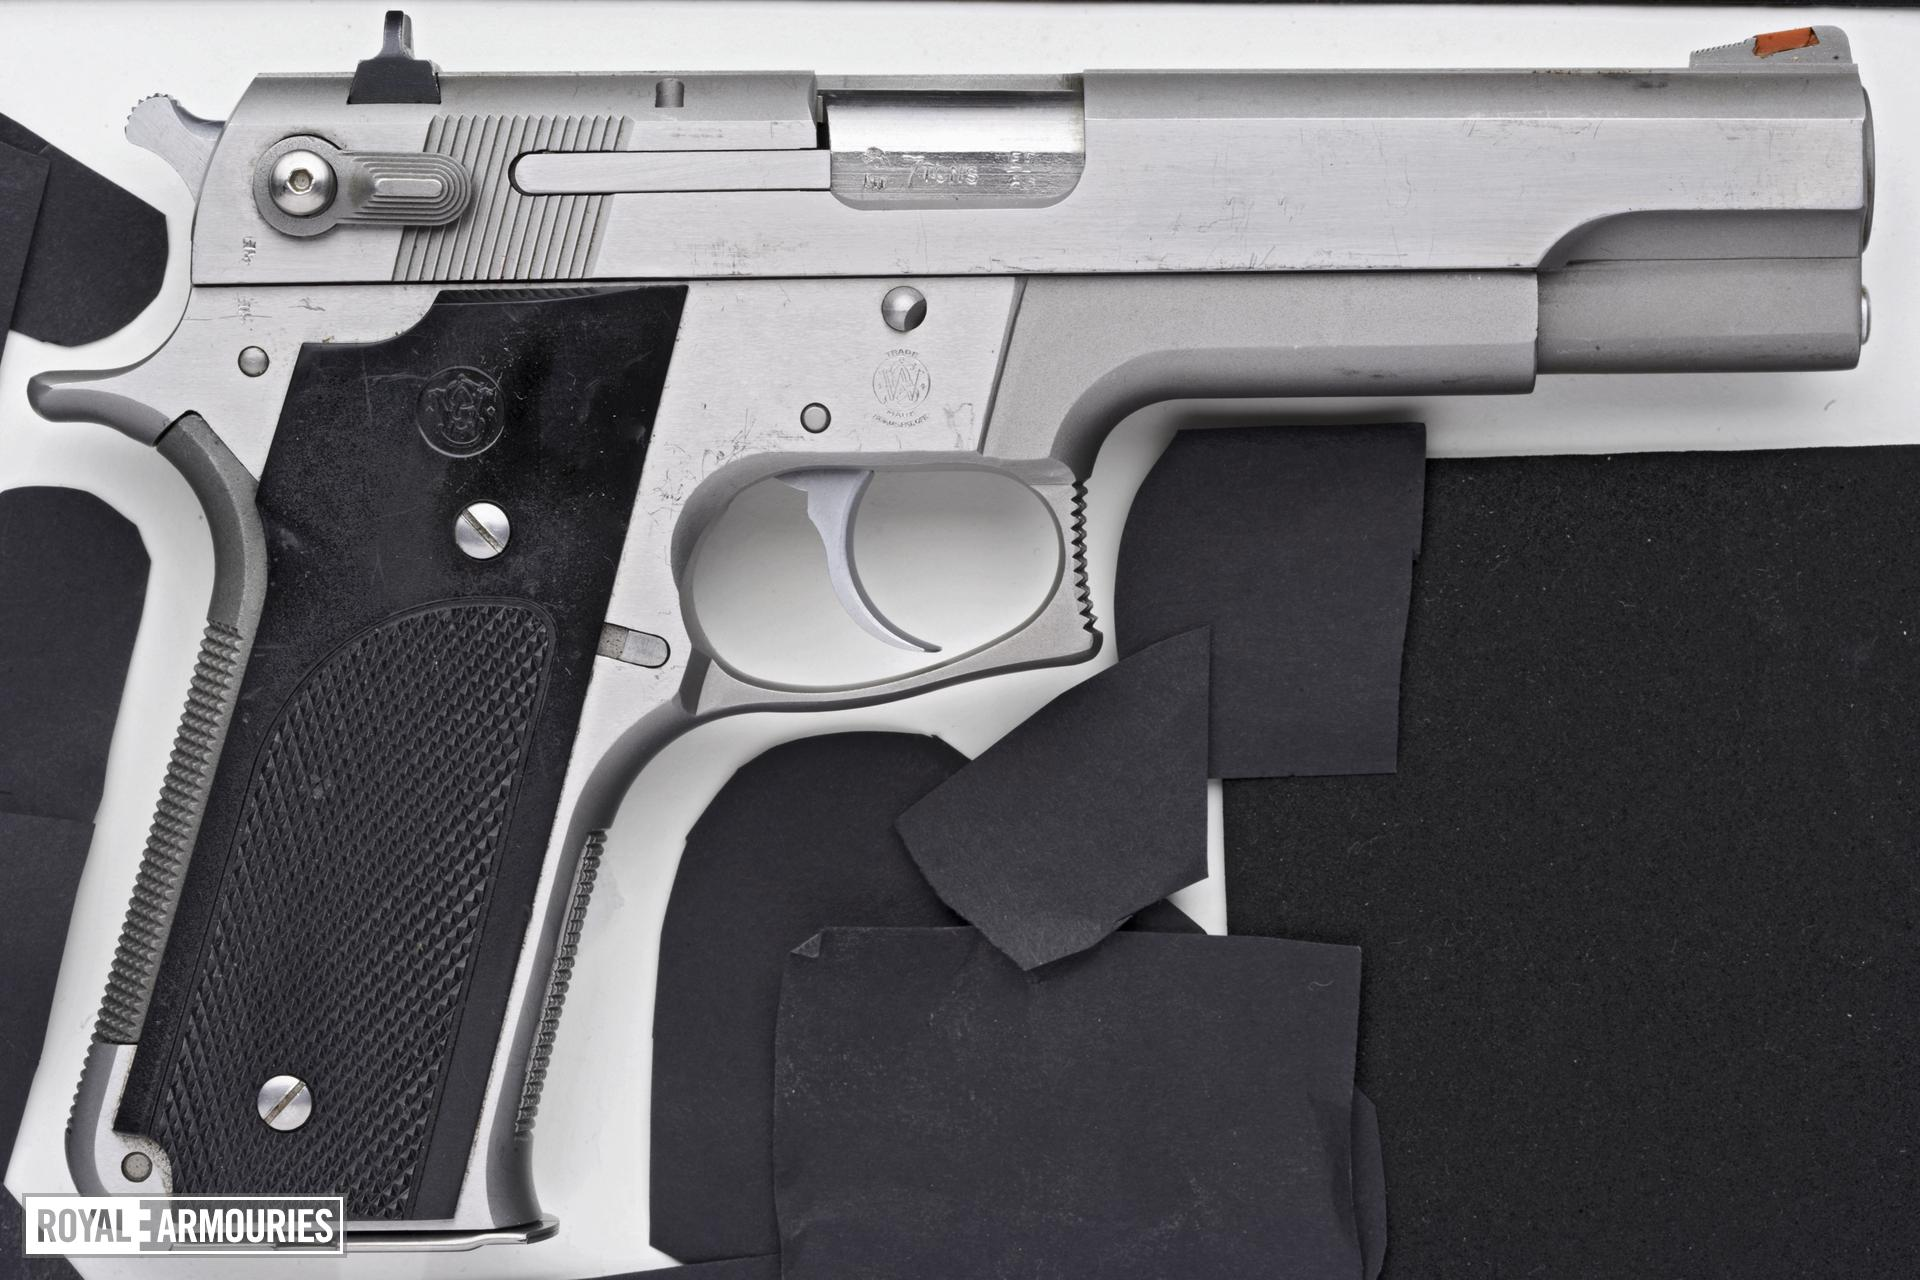 Centrefire self-loading pistol - Smith and Wesson Model 645